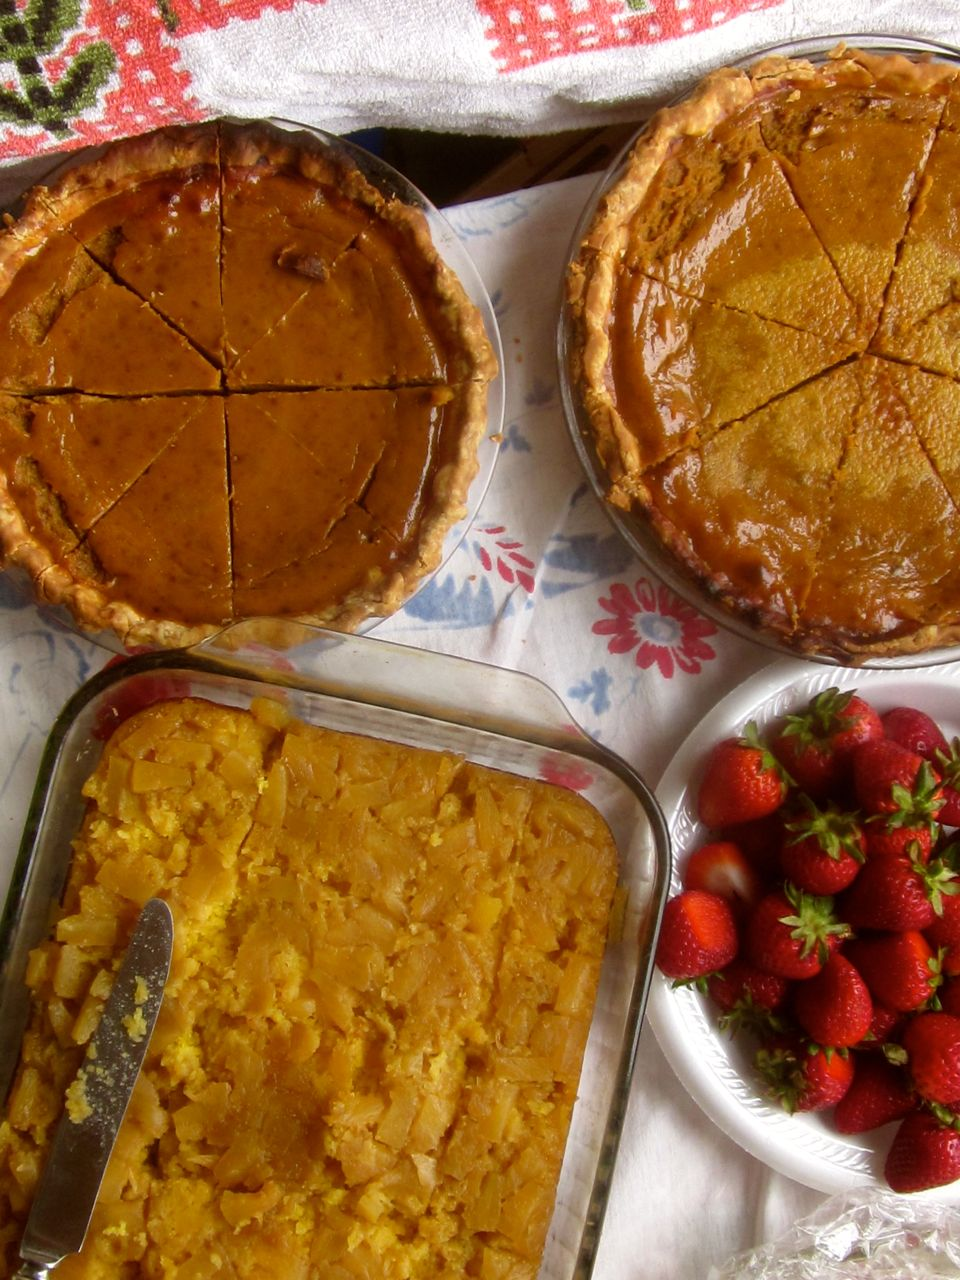 Round-up: Pie, Blogging, Literary Heroines, and the Holidays!